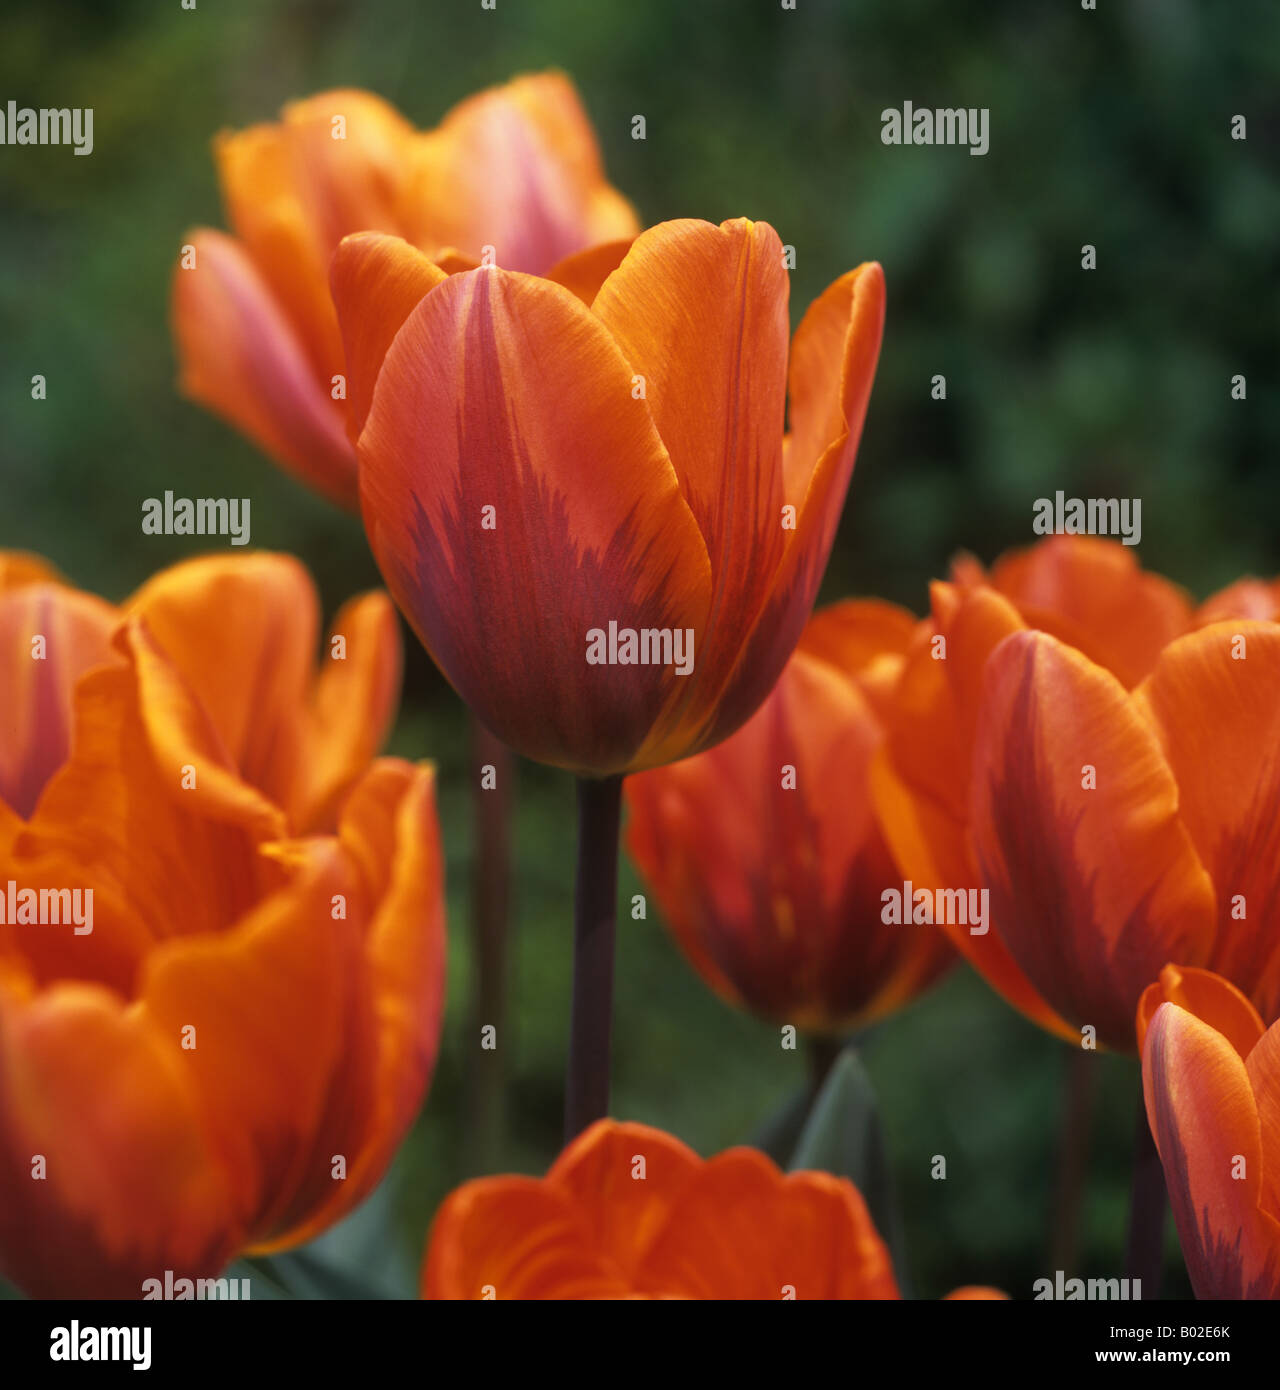 Flower of tulip Princess Irene unusual colour variant - Stock Image